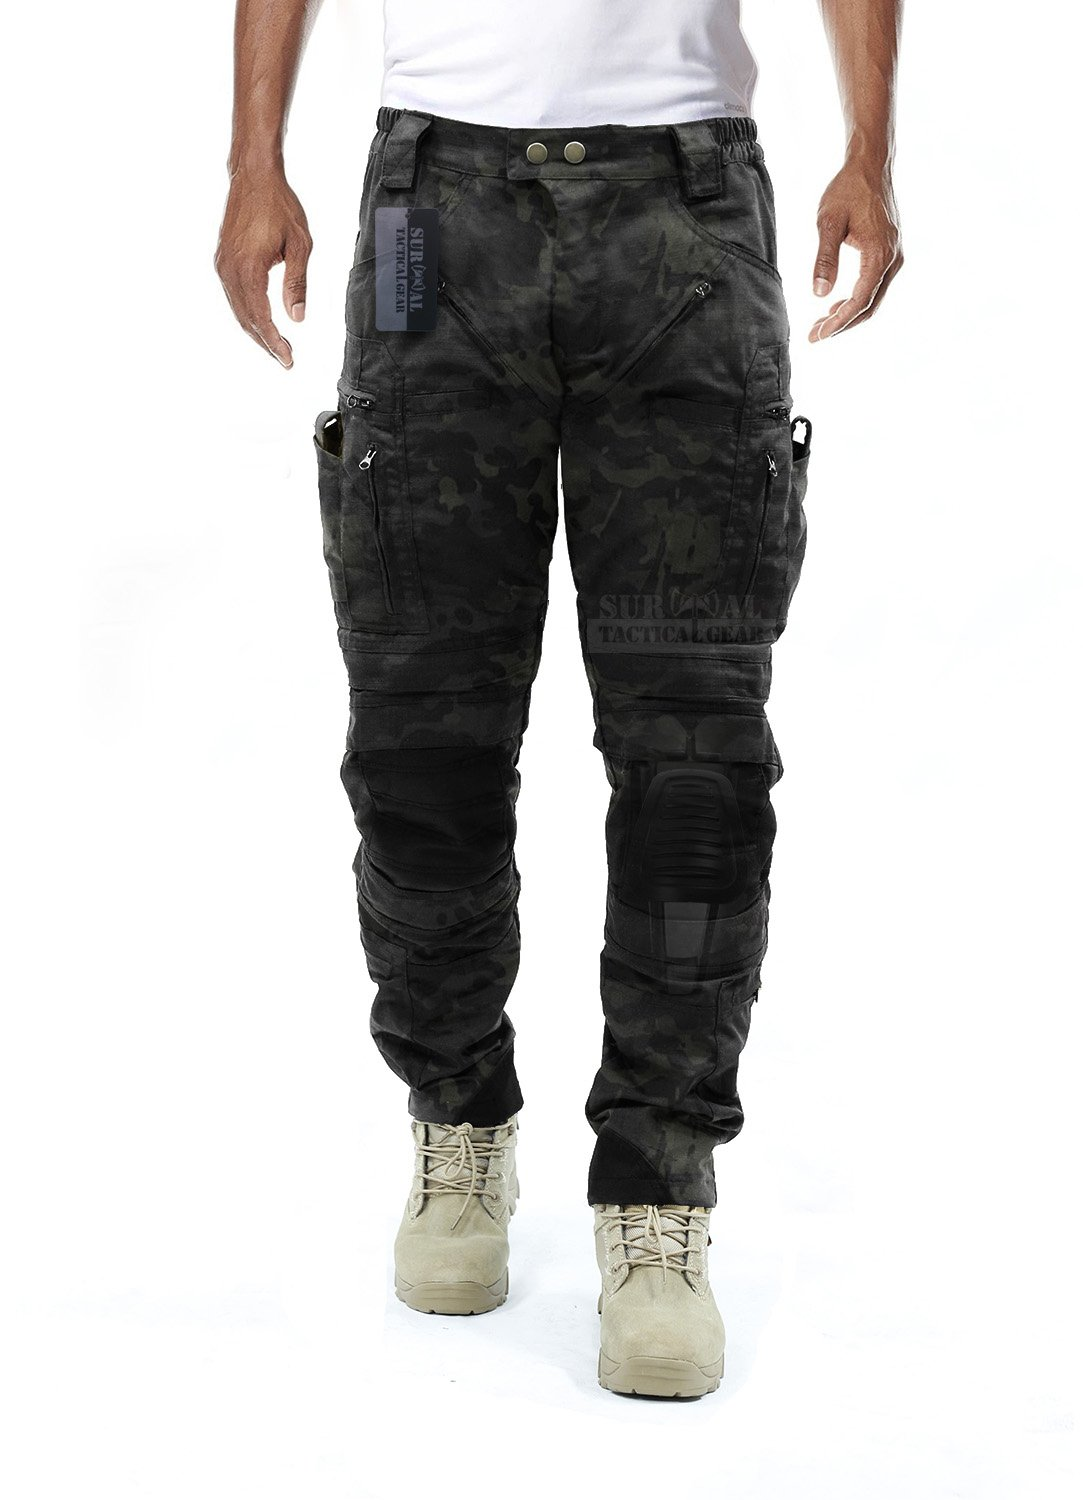 Survival Tactical Gear Men's Airsoft Wargame Tactical Pants with Knee Protection System & Air Circulation System (Multicam Black Camo, L) by Survival Tactical Gear